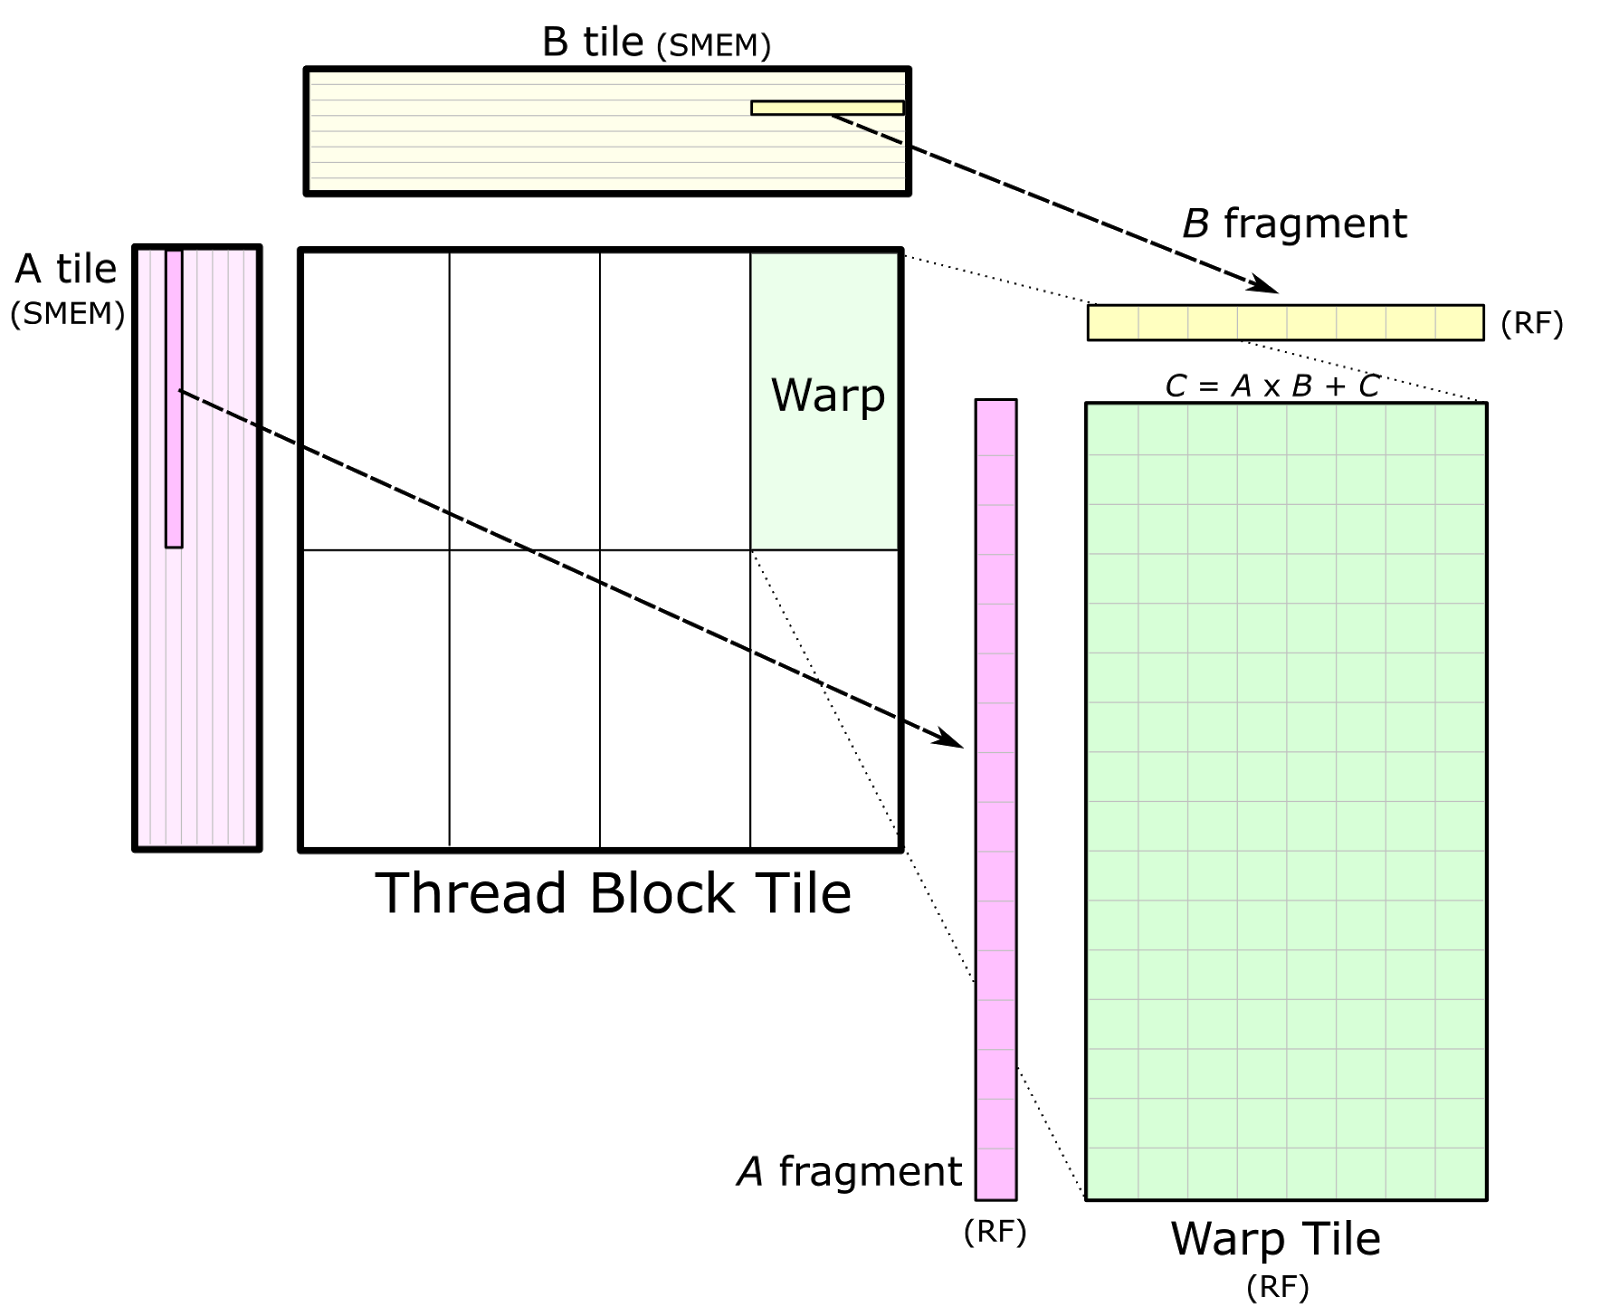 Figure 4. An individual warp computes an accumulated matrix product by iteratively loading fragments of A and B from the corresponding shared memory (SMEM) tiles into registers (RF) and computing an outer product.